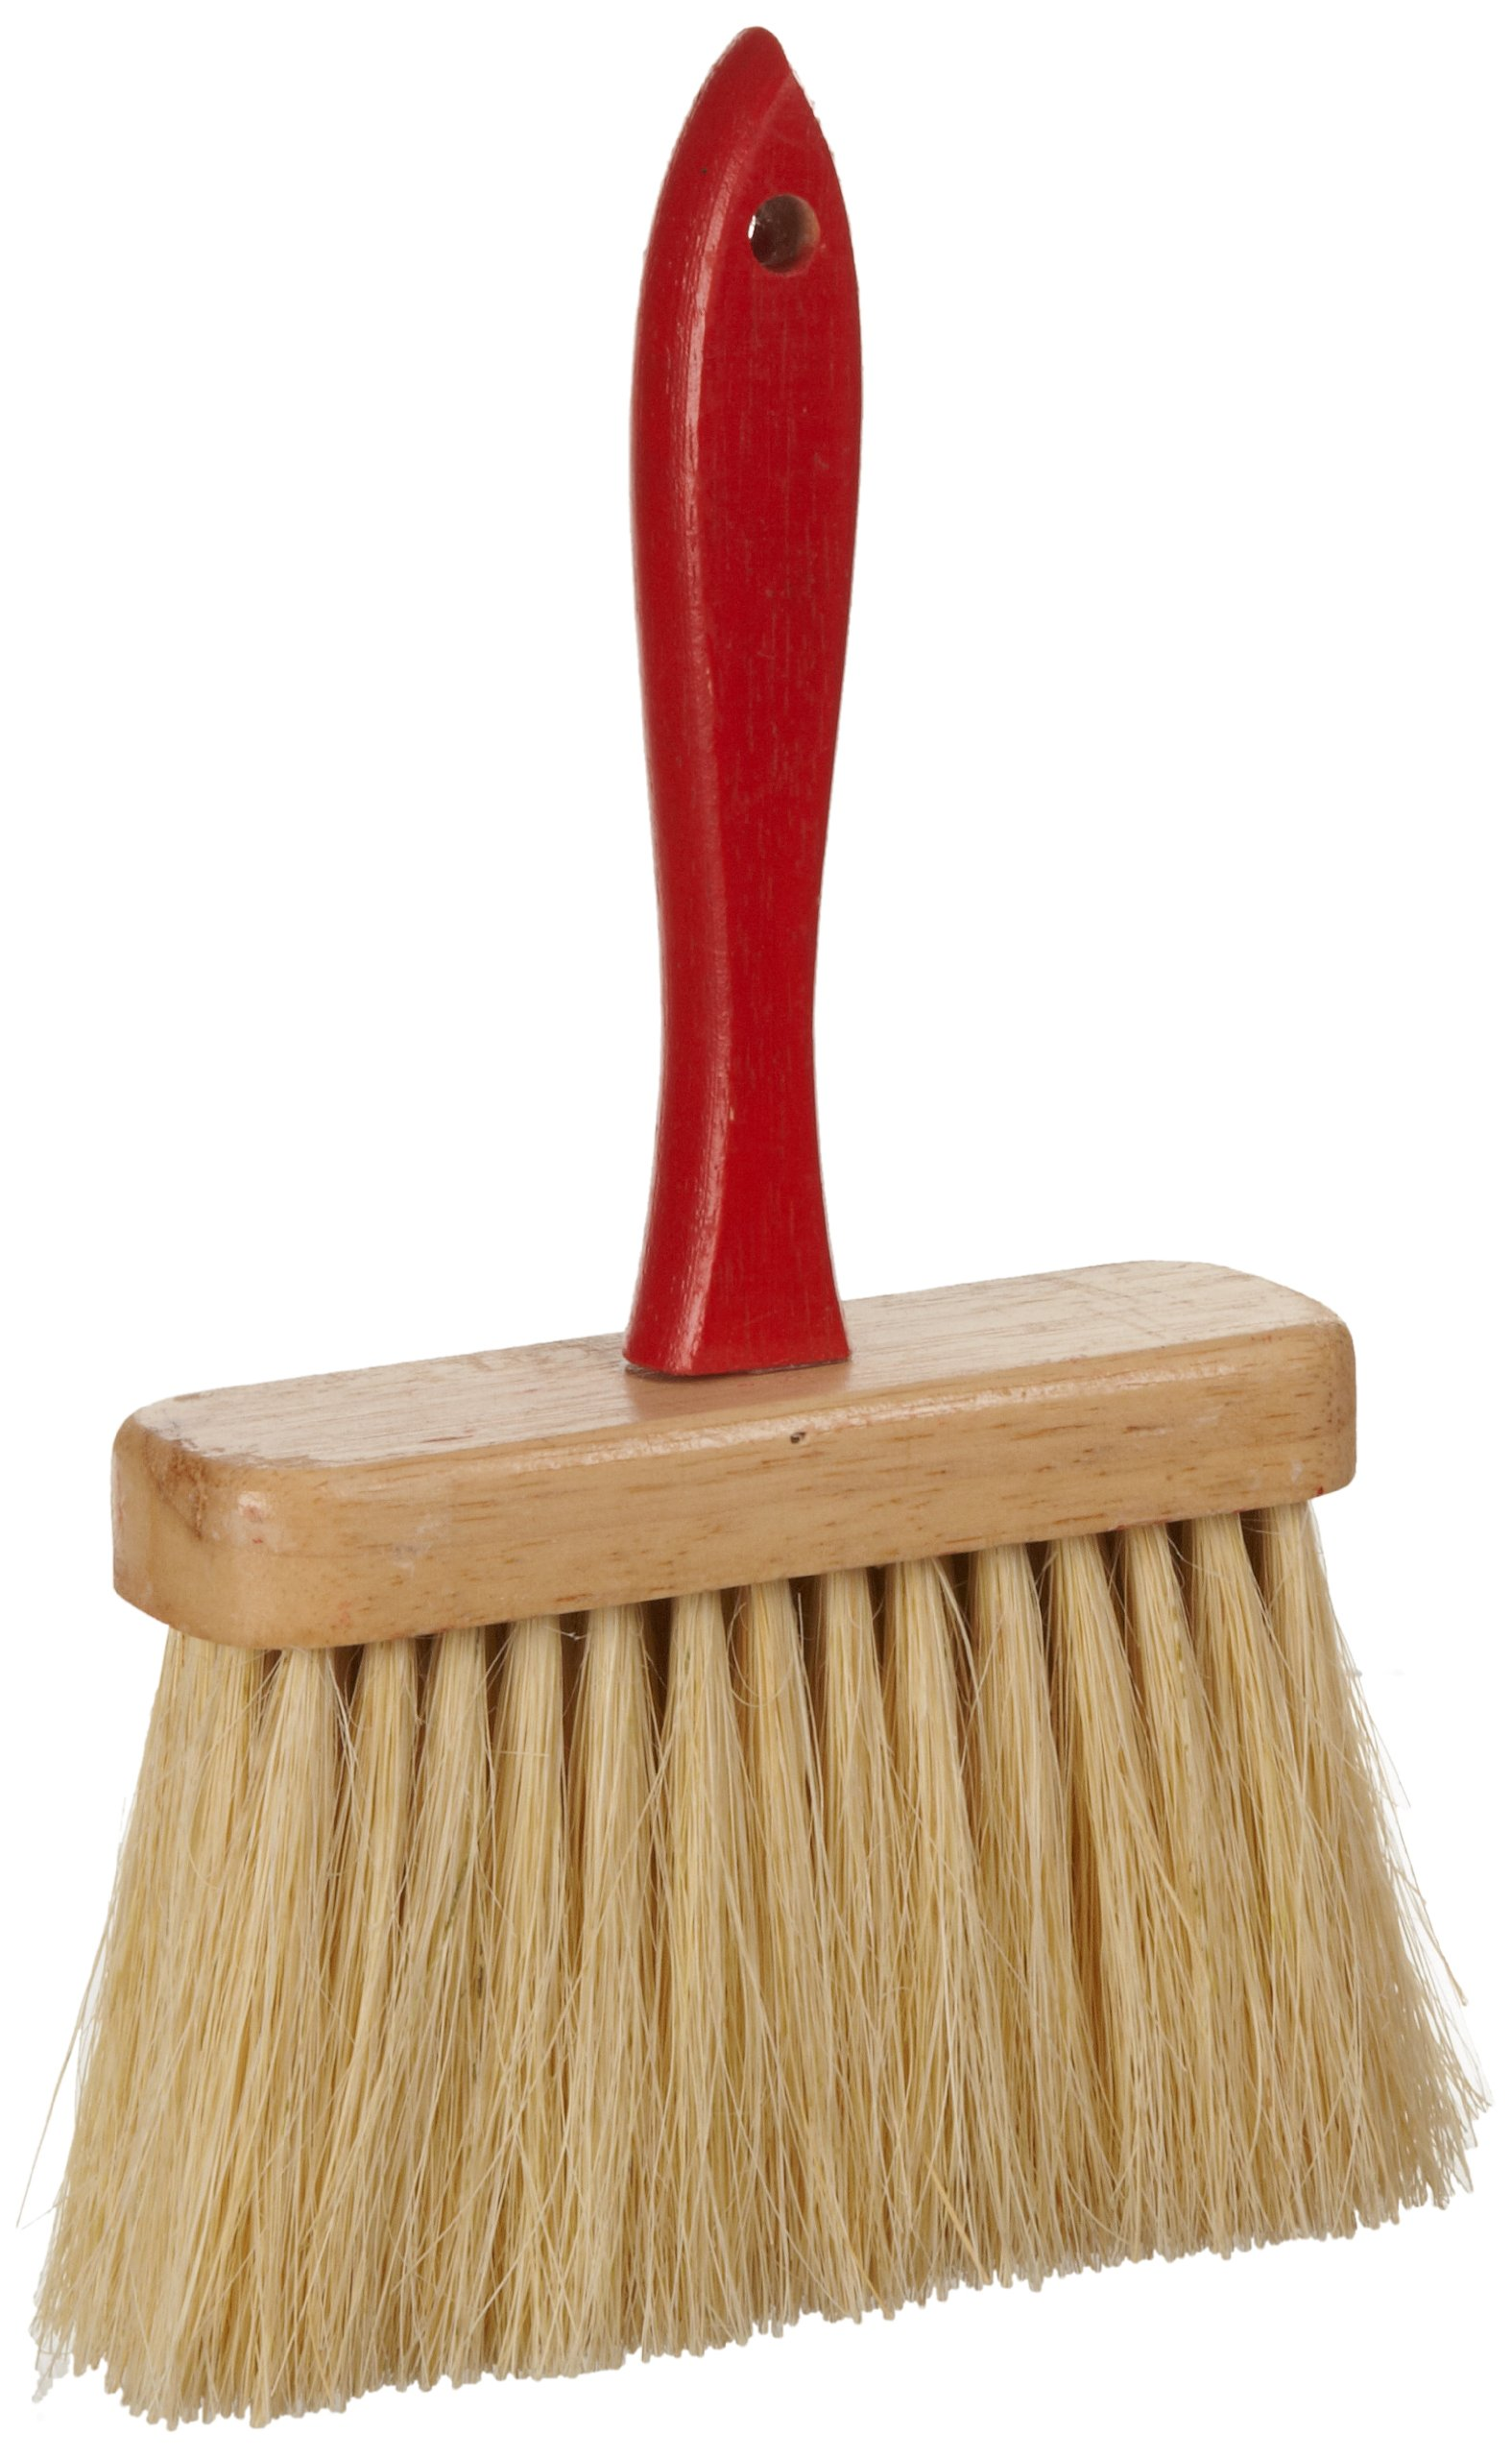 Weiler 44448 Masonry Brush with Handle, 5 Rows, White Tampico Fill,  11-1/2'' Length, 6-1/2'' Block Size